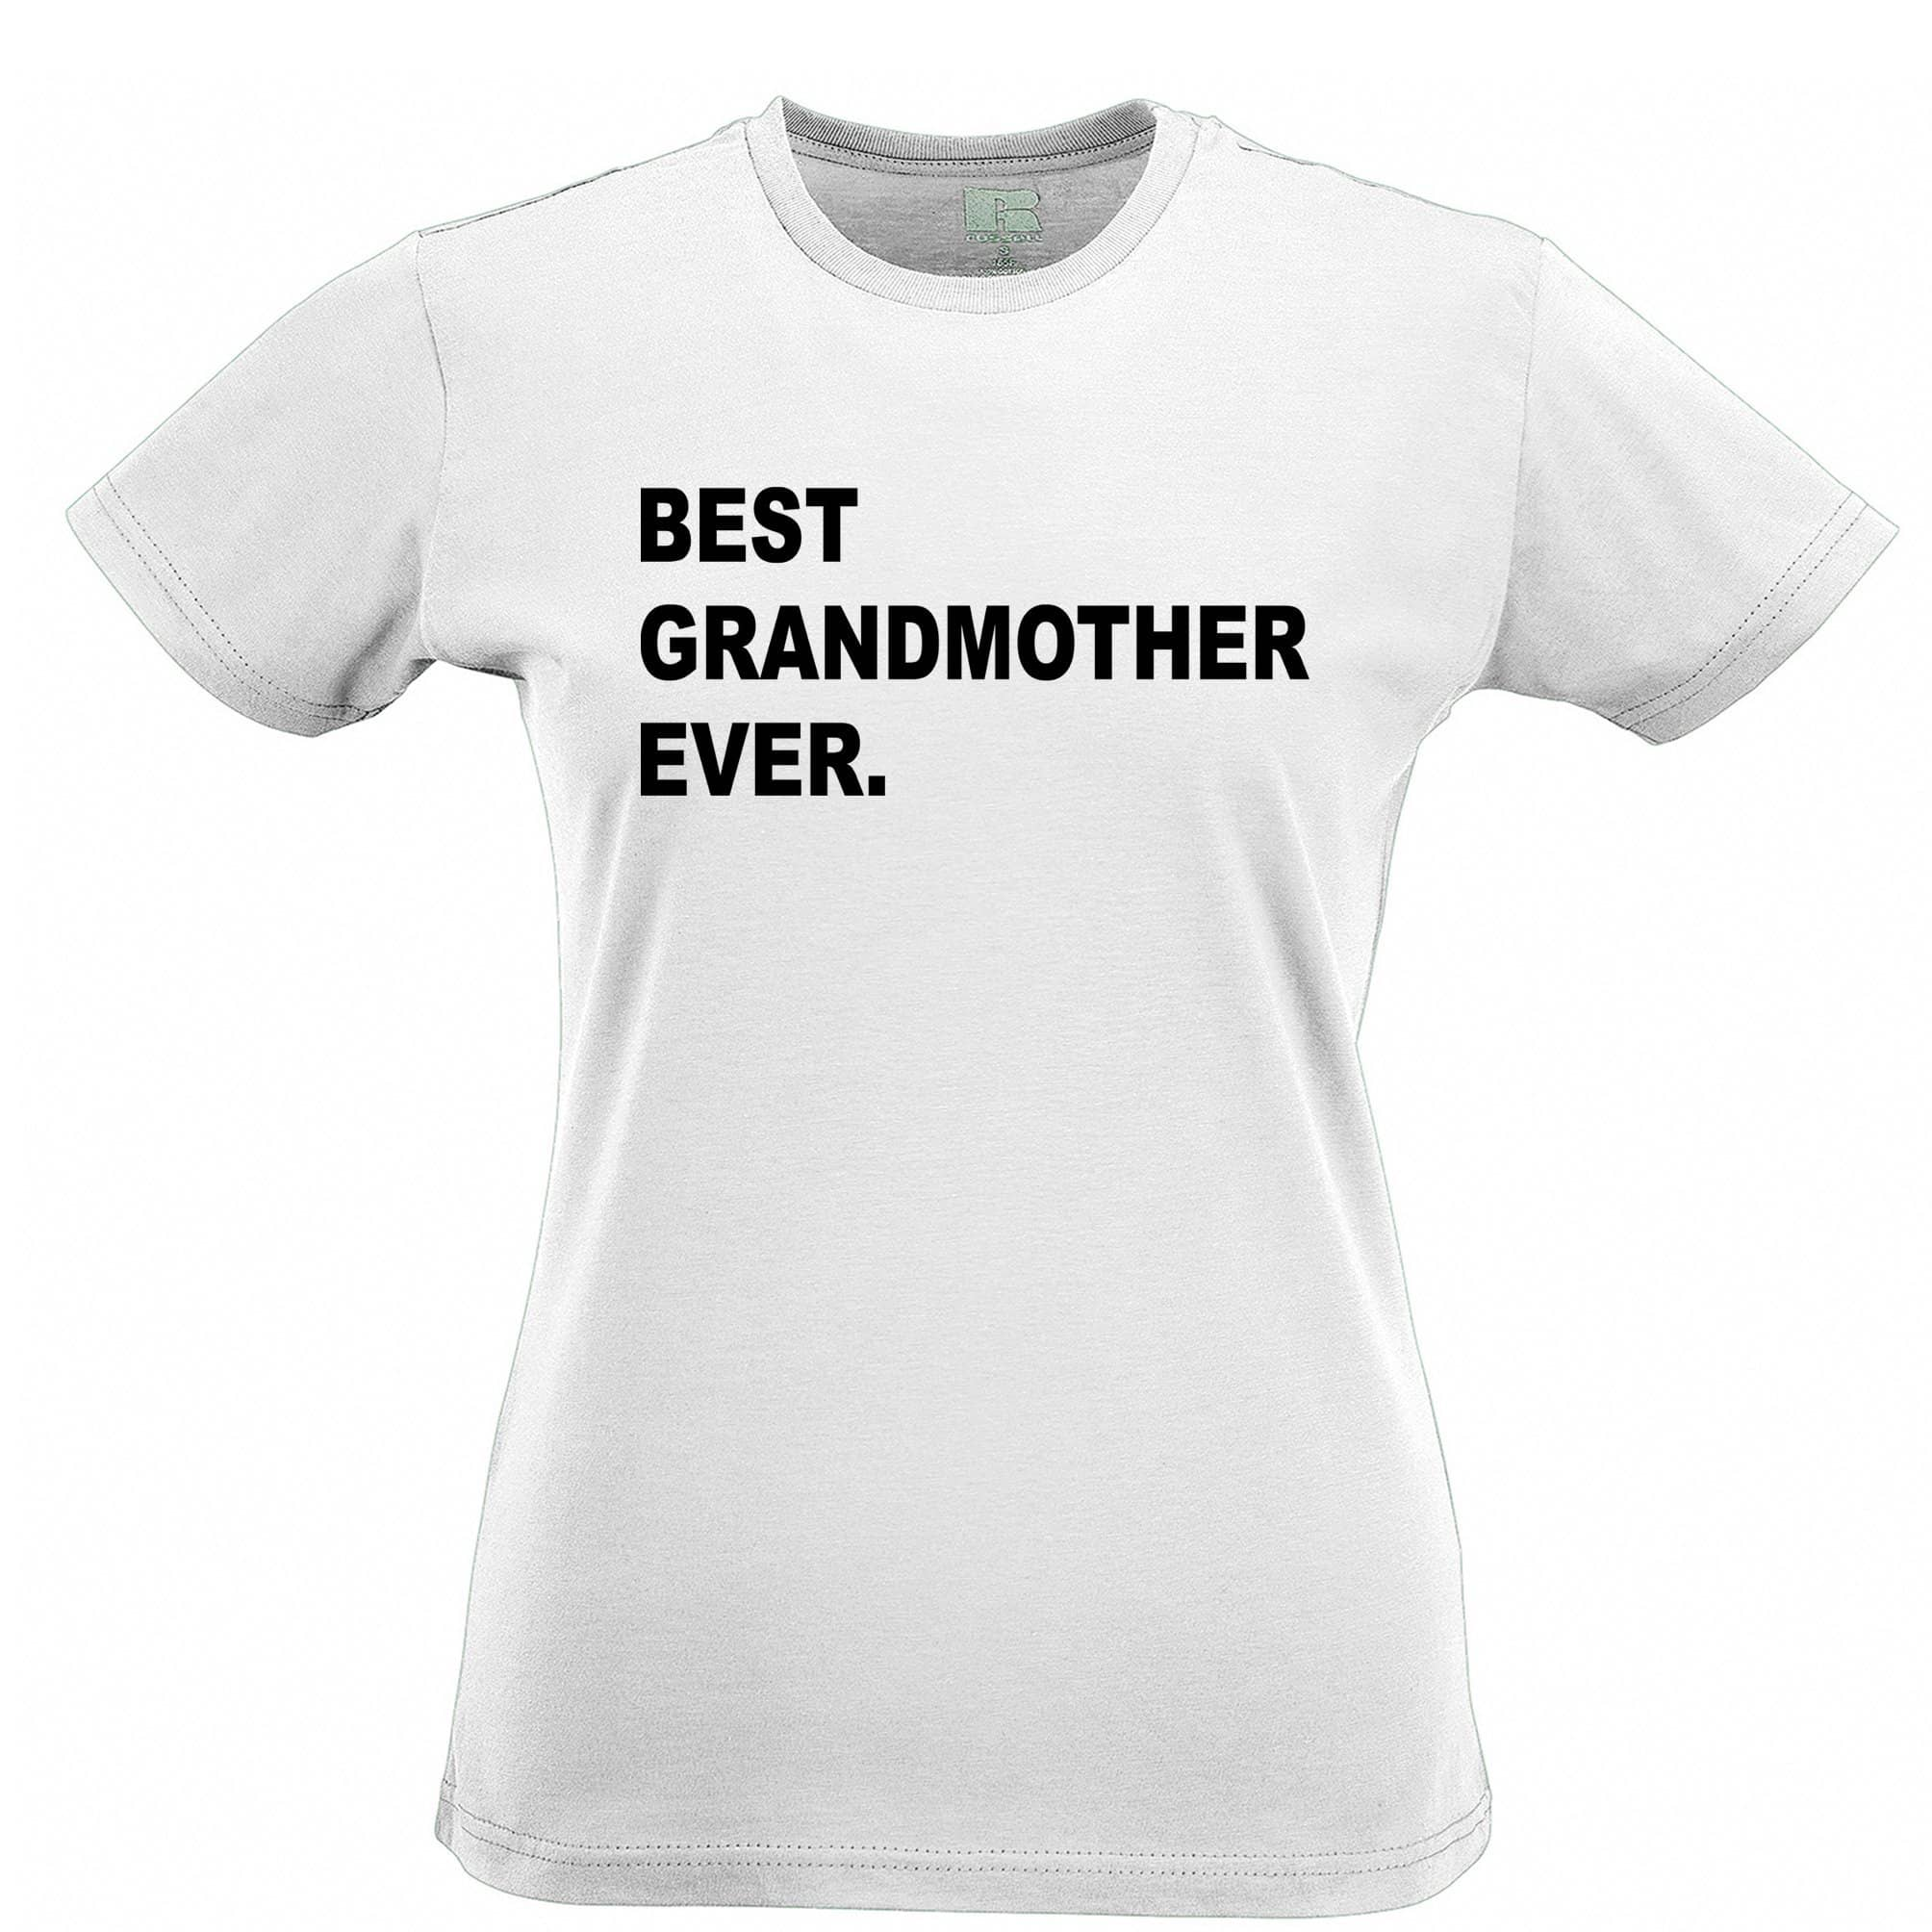 Best Grandmother Ever Womens TShirt Parent Family Slogan